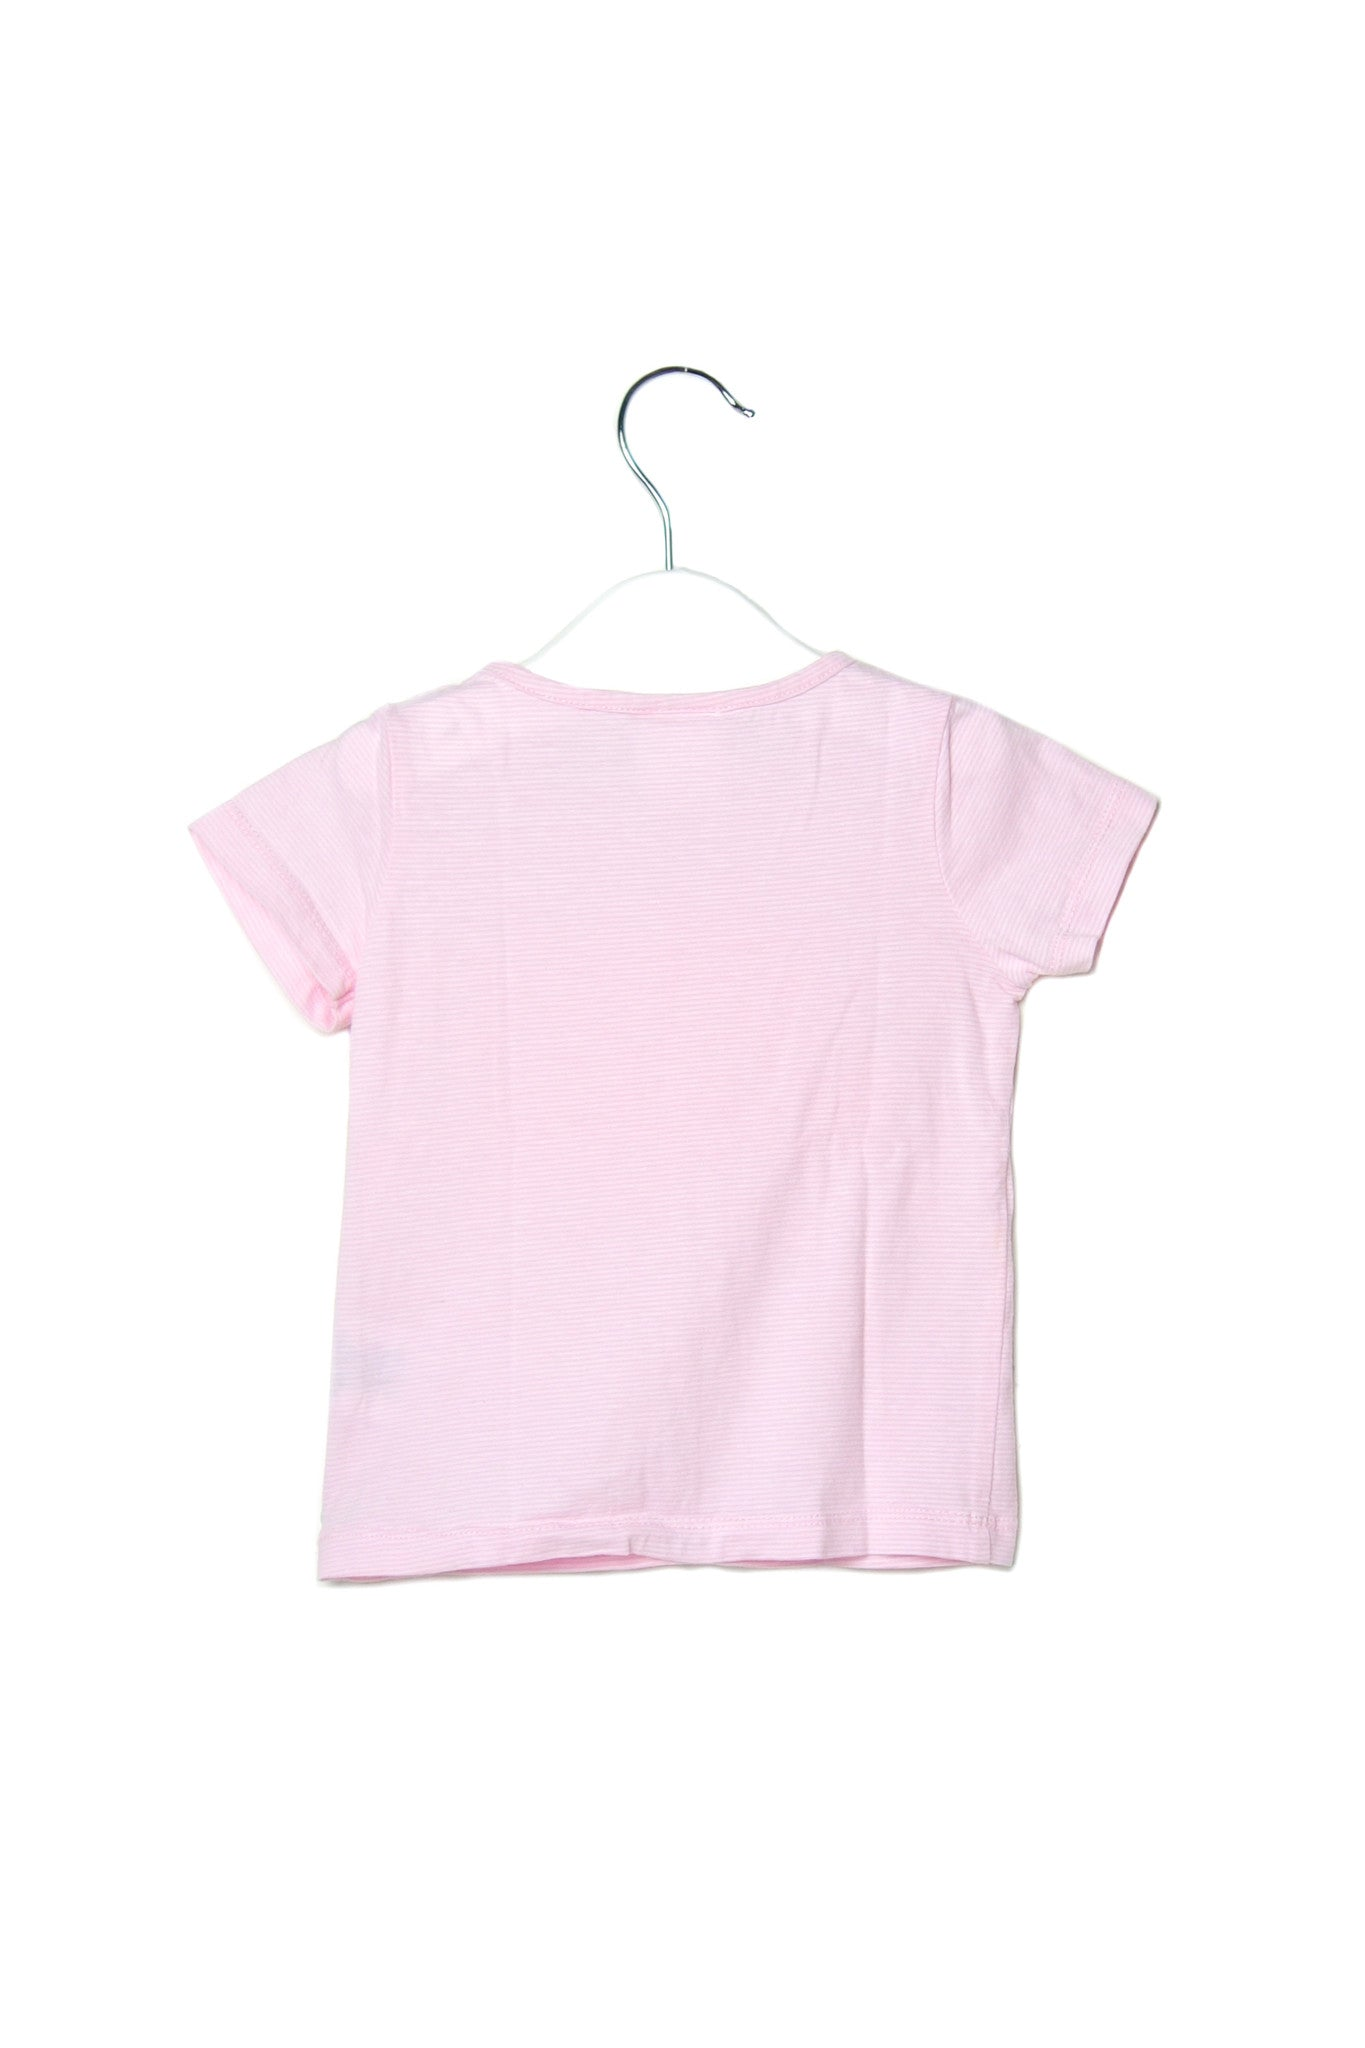 10001429 Seed Baby~T-Shirt 12-18M at Retykle